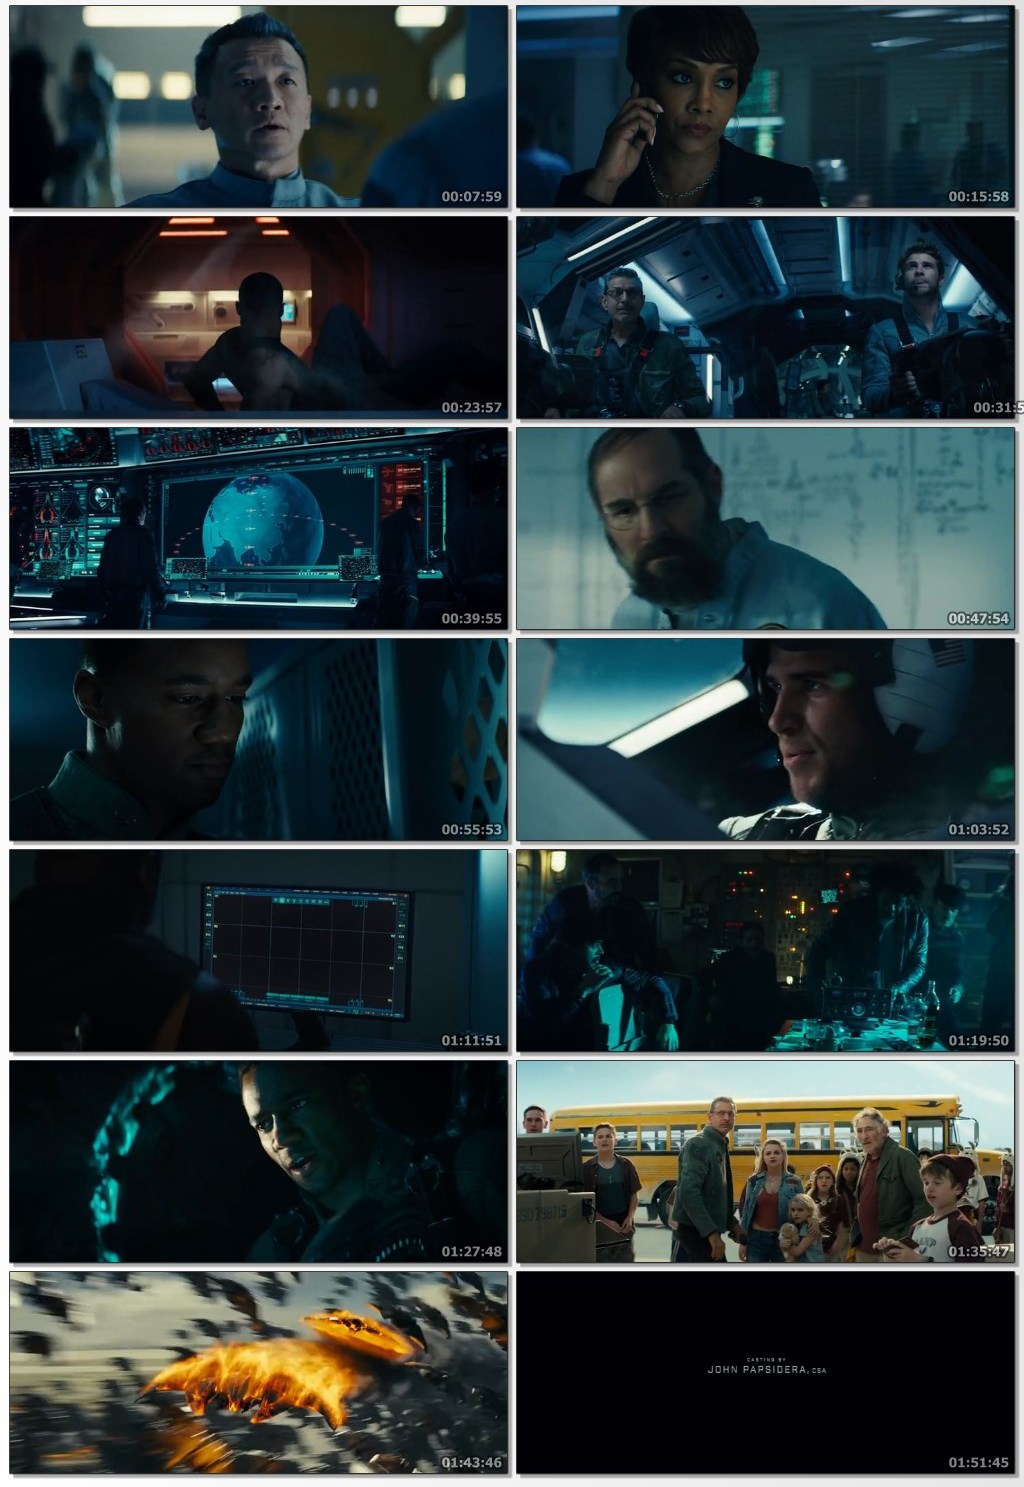 independence day resurgence movie download 480p, independence day resurgence movie download 720p, independence day resurgence movie download 300mb, independence day resurgence movie download free